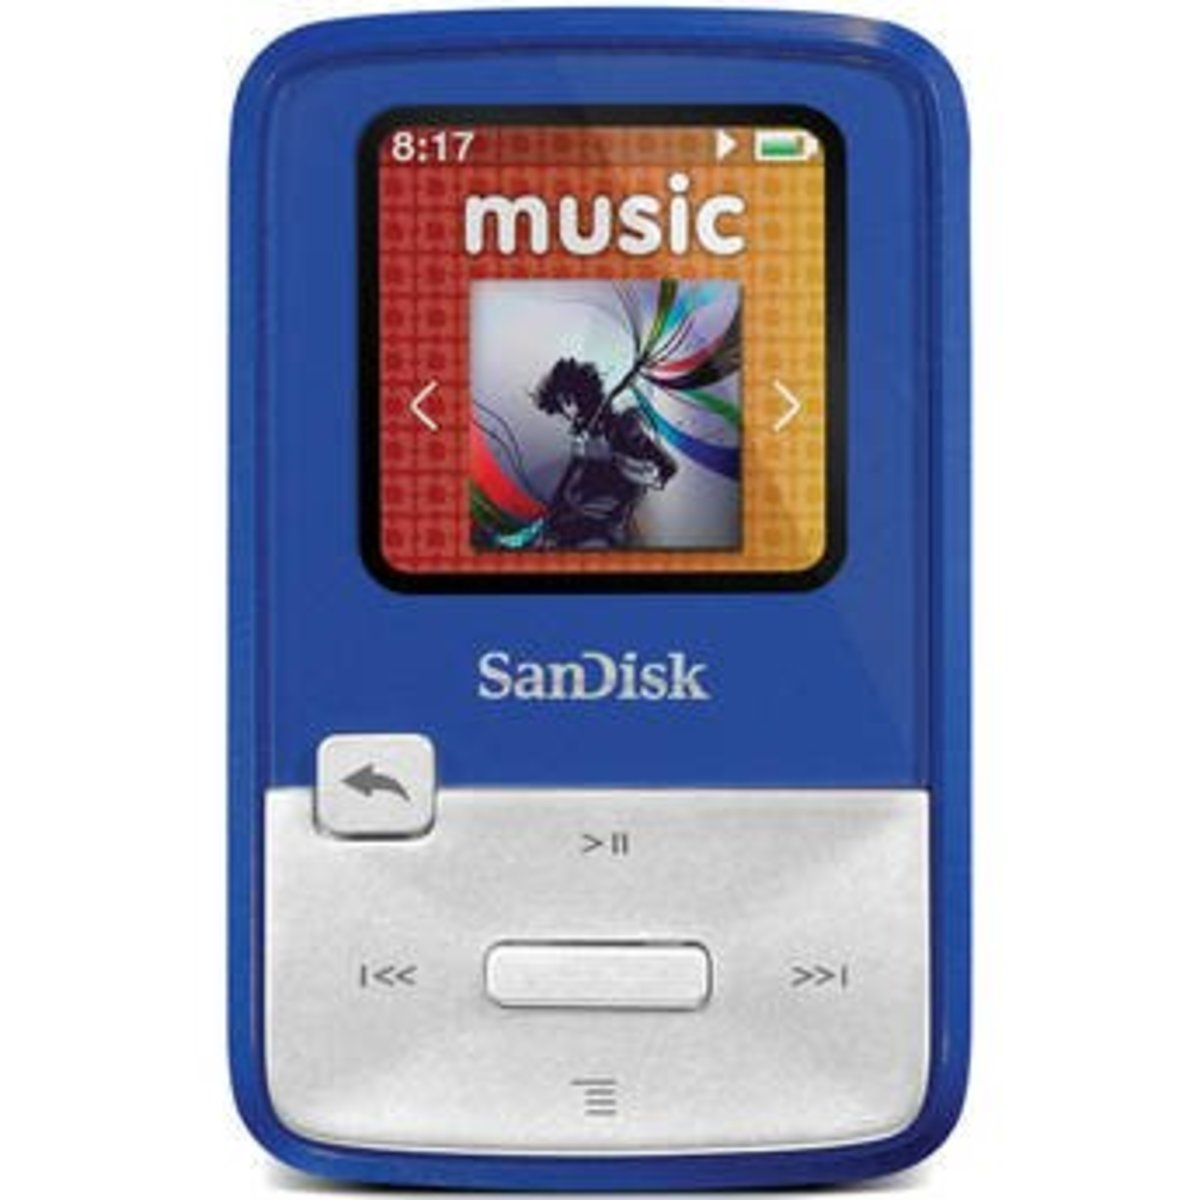 Troubleshooting SanDisk Sansa Clip Zip MP3 Player Problems